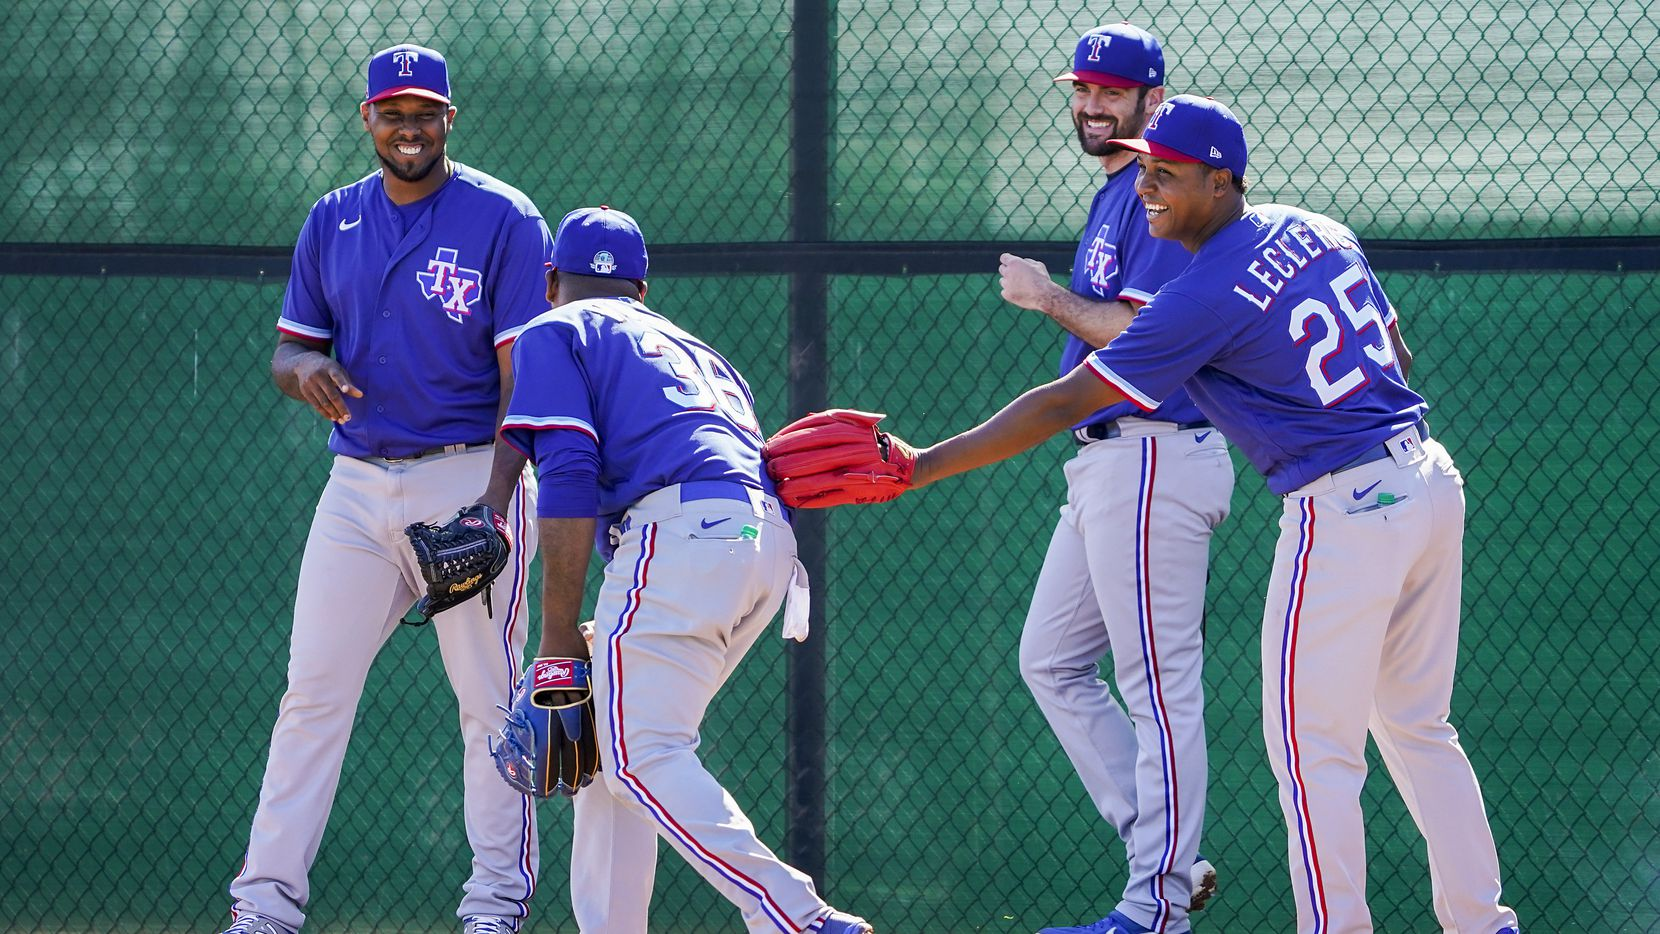 Texas Rangers pitcher Jose Leclerc (right) laughs with Edinson Volquez (36) Juan Nicasio (left) and Brian Flynn as they participate in a fielding drill during a spring training workout at the team's training facility on Saturday, Feb. 15, 2020, in Surprise, Ariz.